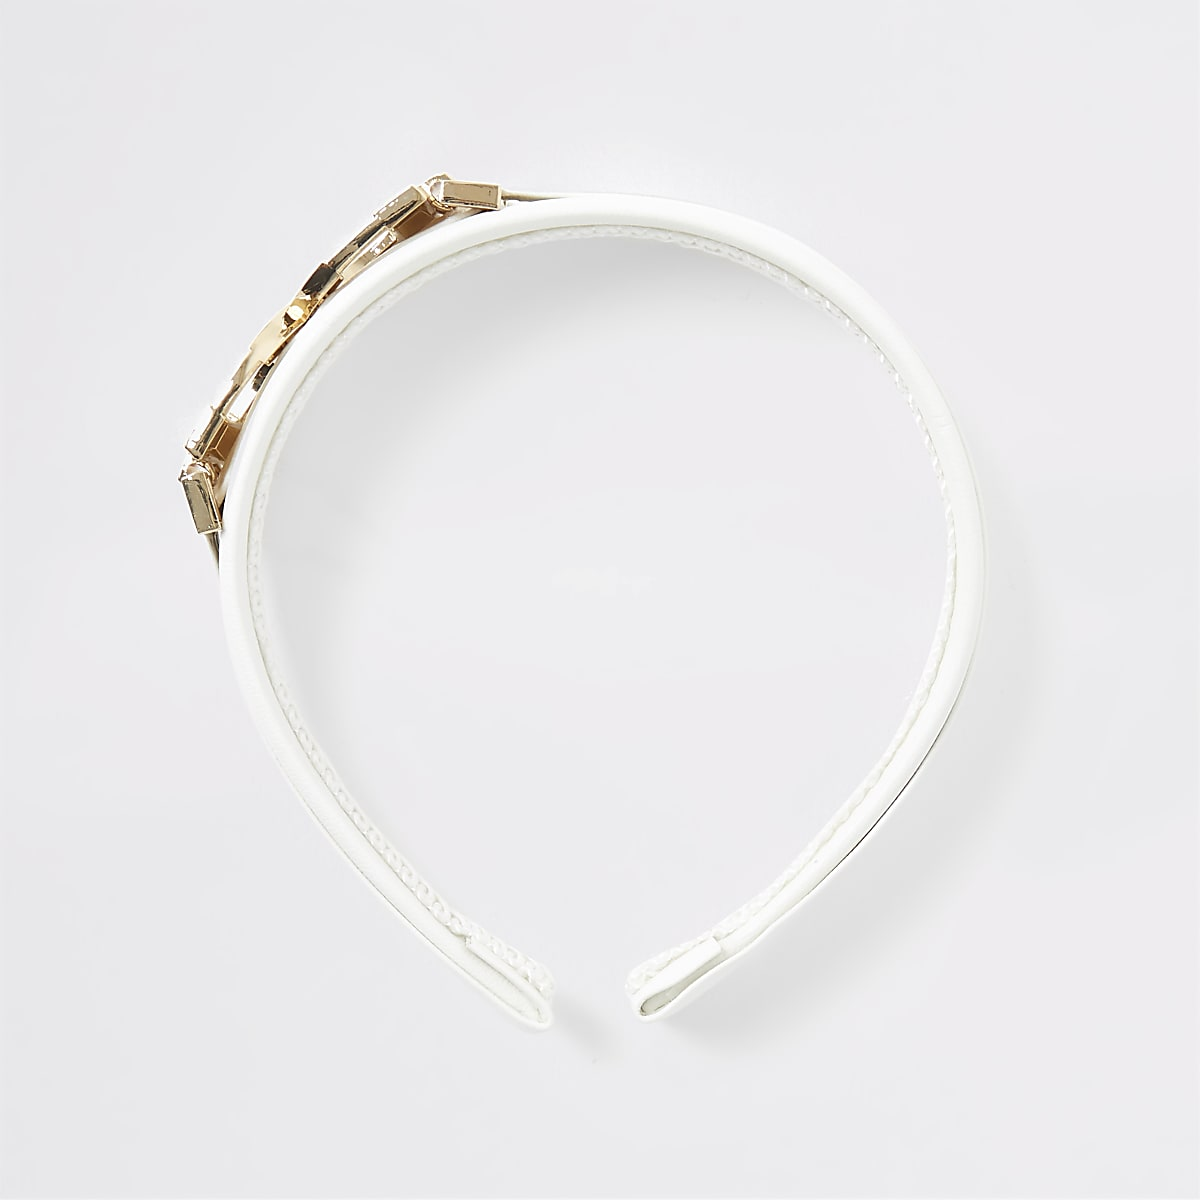 White D ring headband